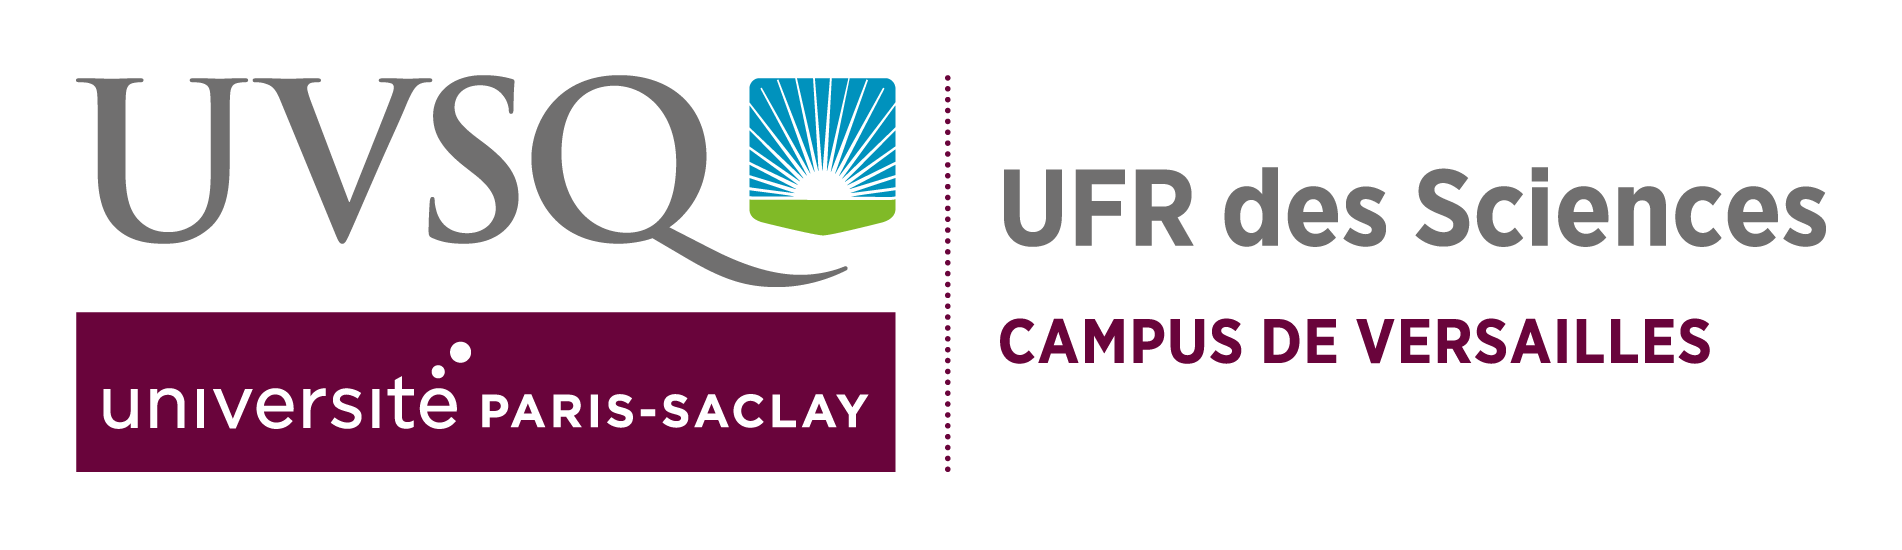 logo-UFR des sciences